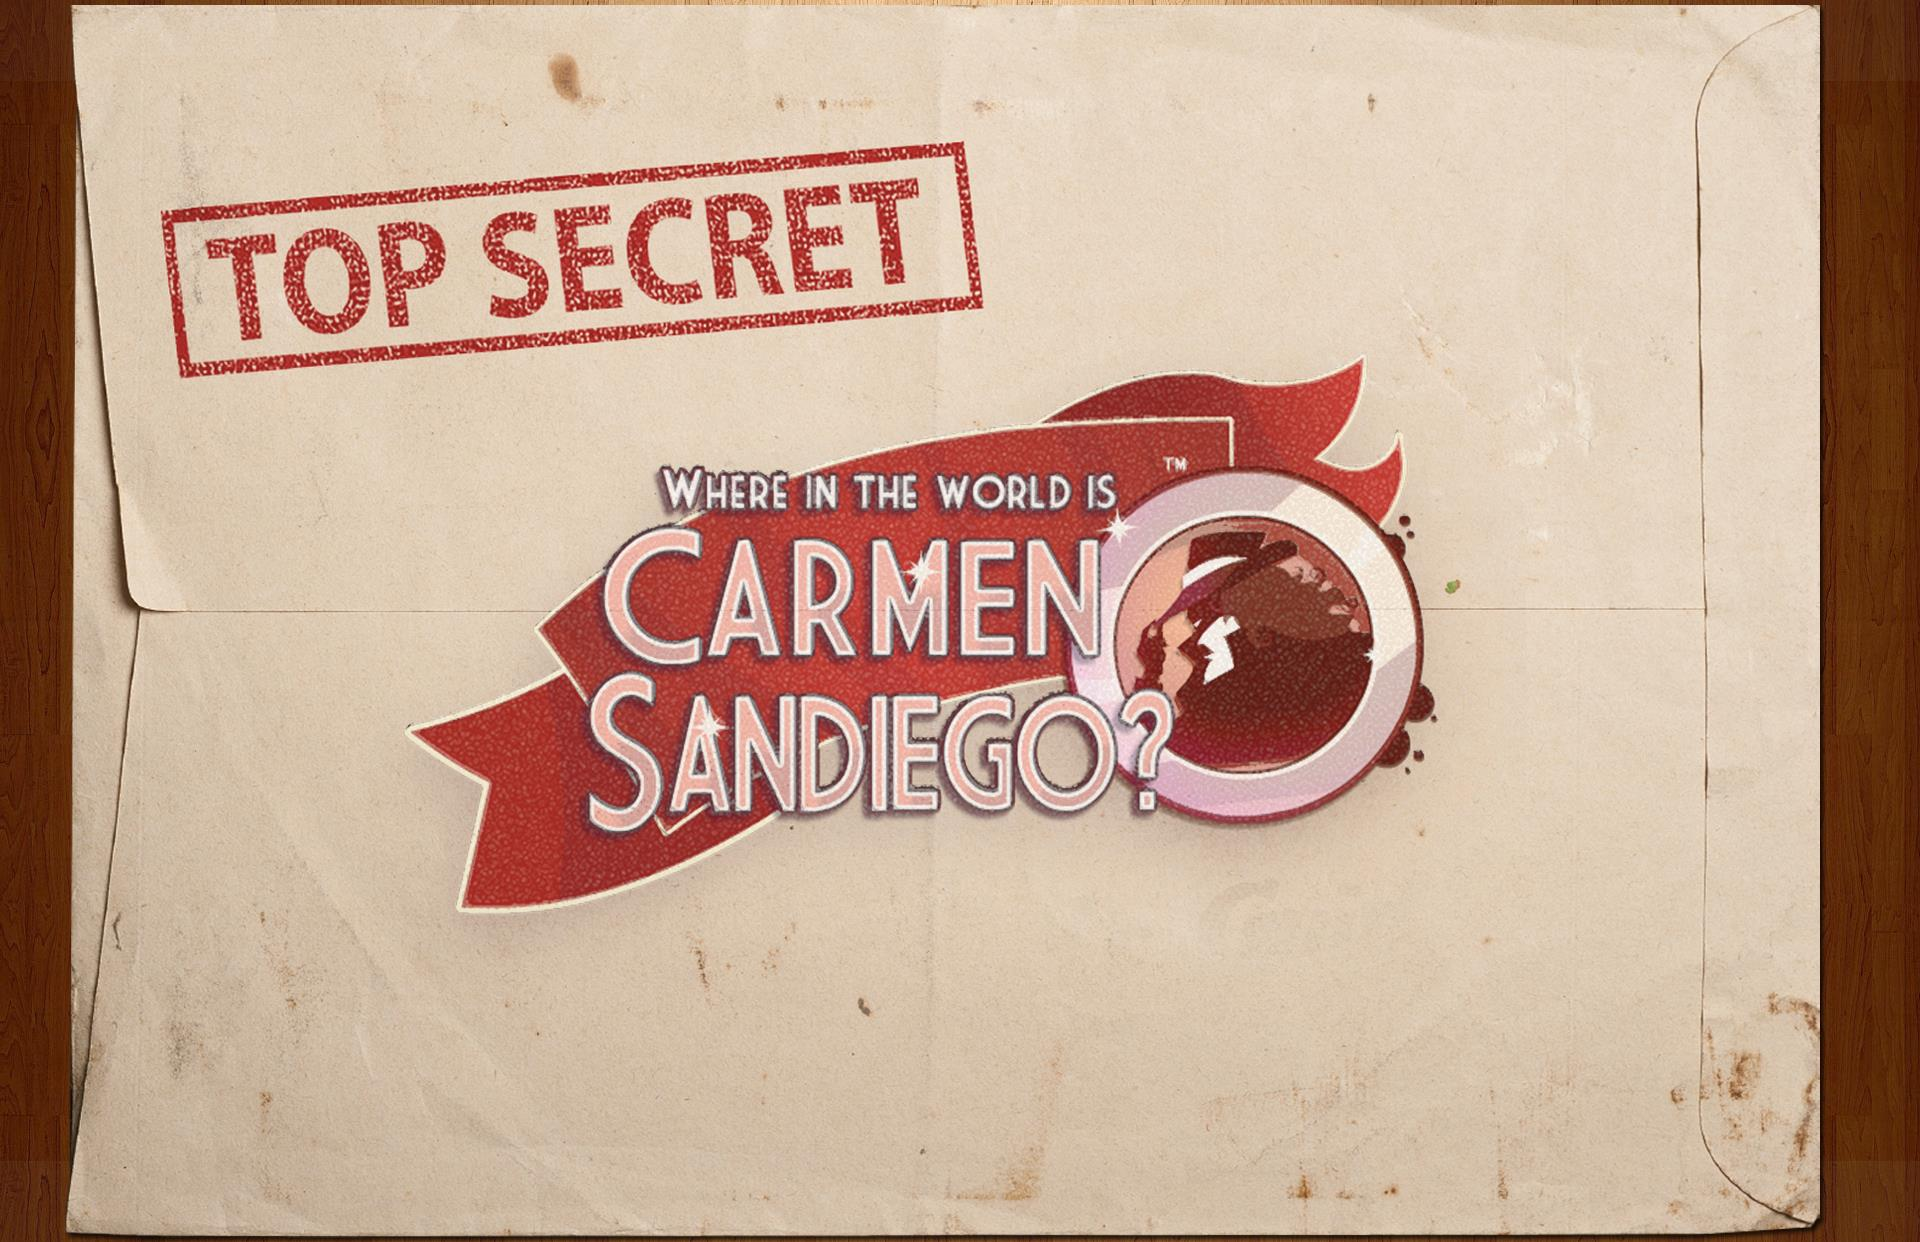 Where in the World is Carmen Sandiego? (Facebook)